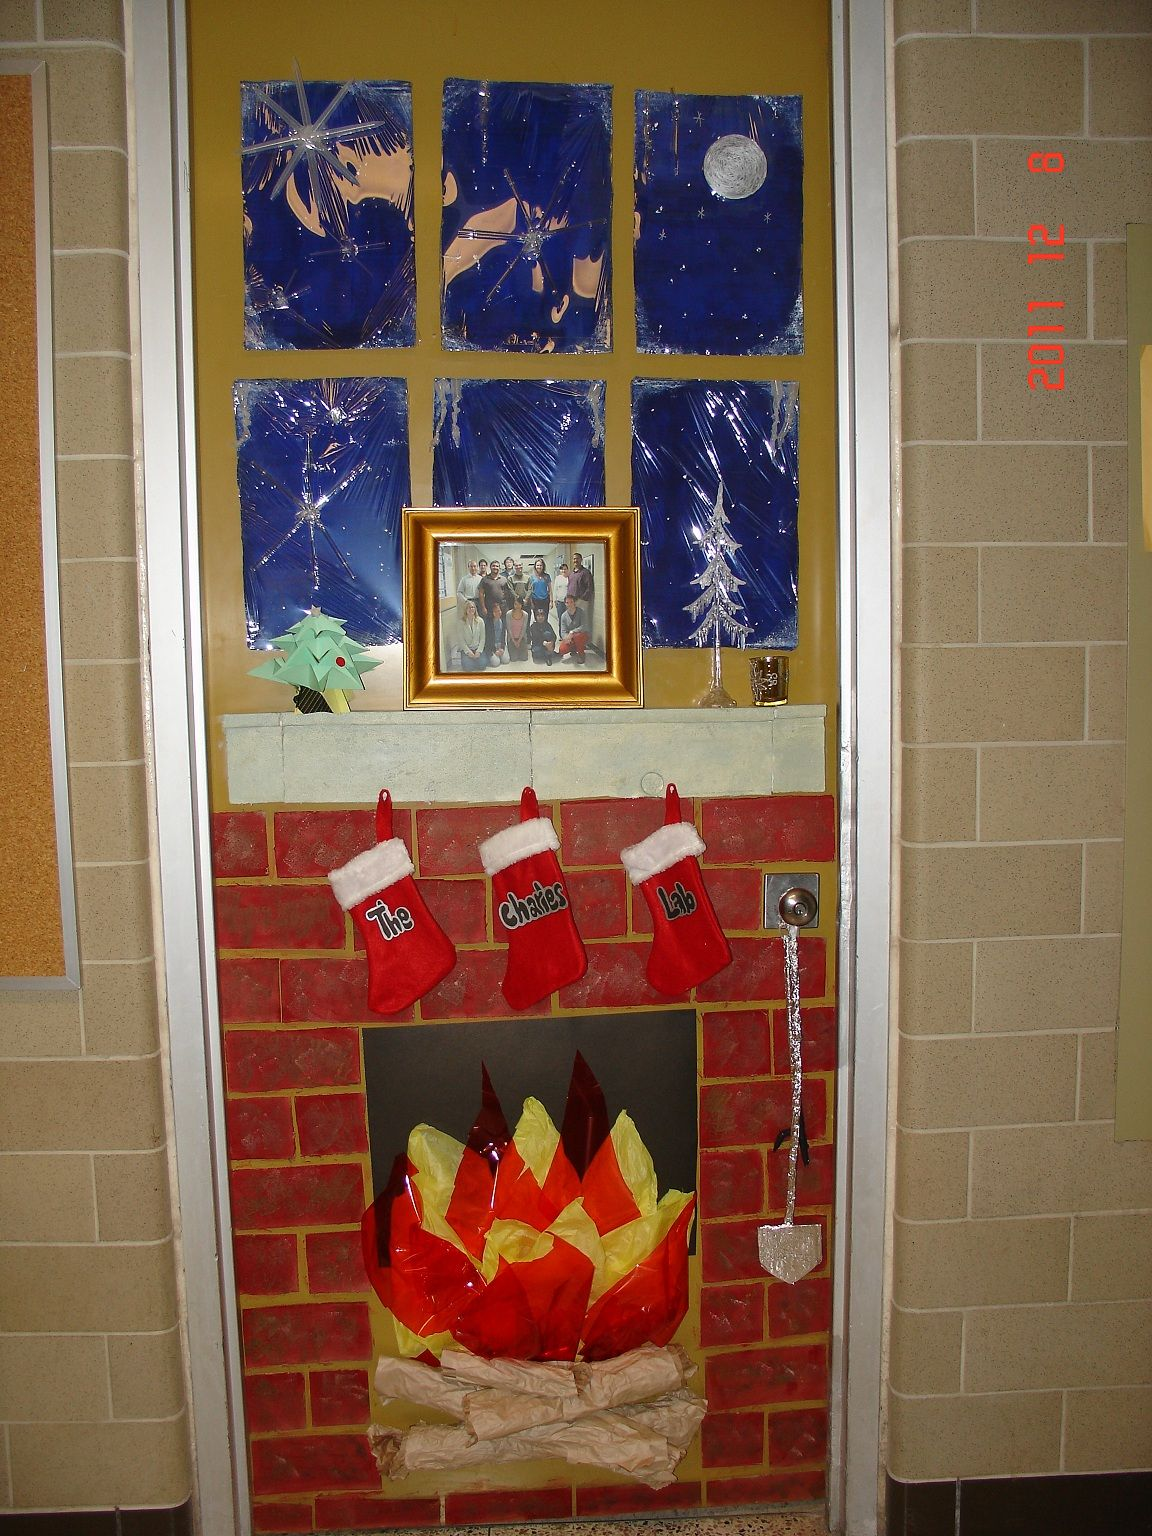 Christmas Door Decor Ideas Part - 35: 15 Best SCHOOL CHRISTMAS DOOR DECORATIONS Images On Pinterest | Christmas  Door Decorations, Best Christmas